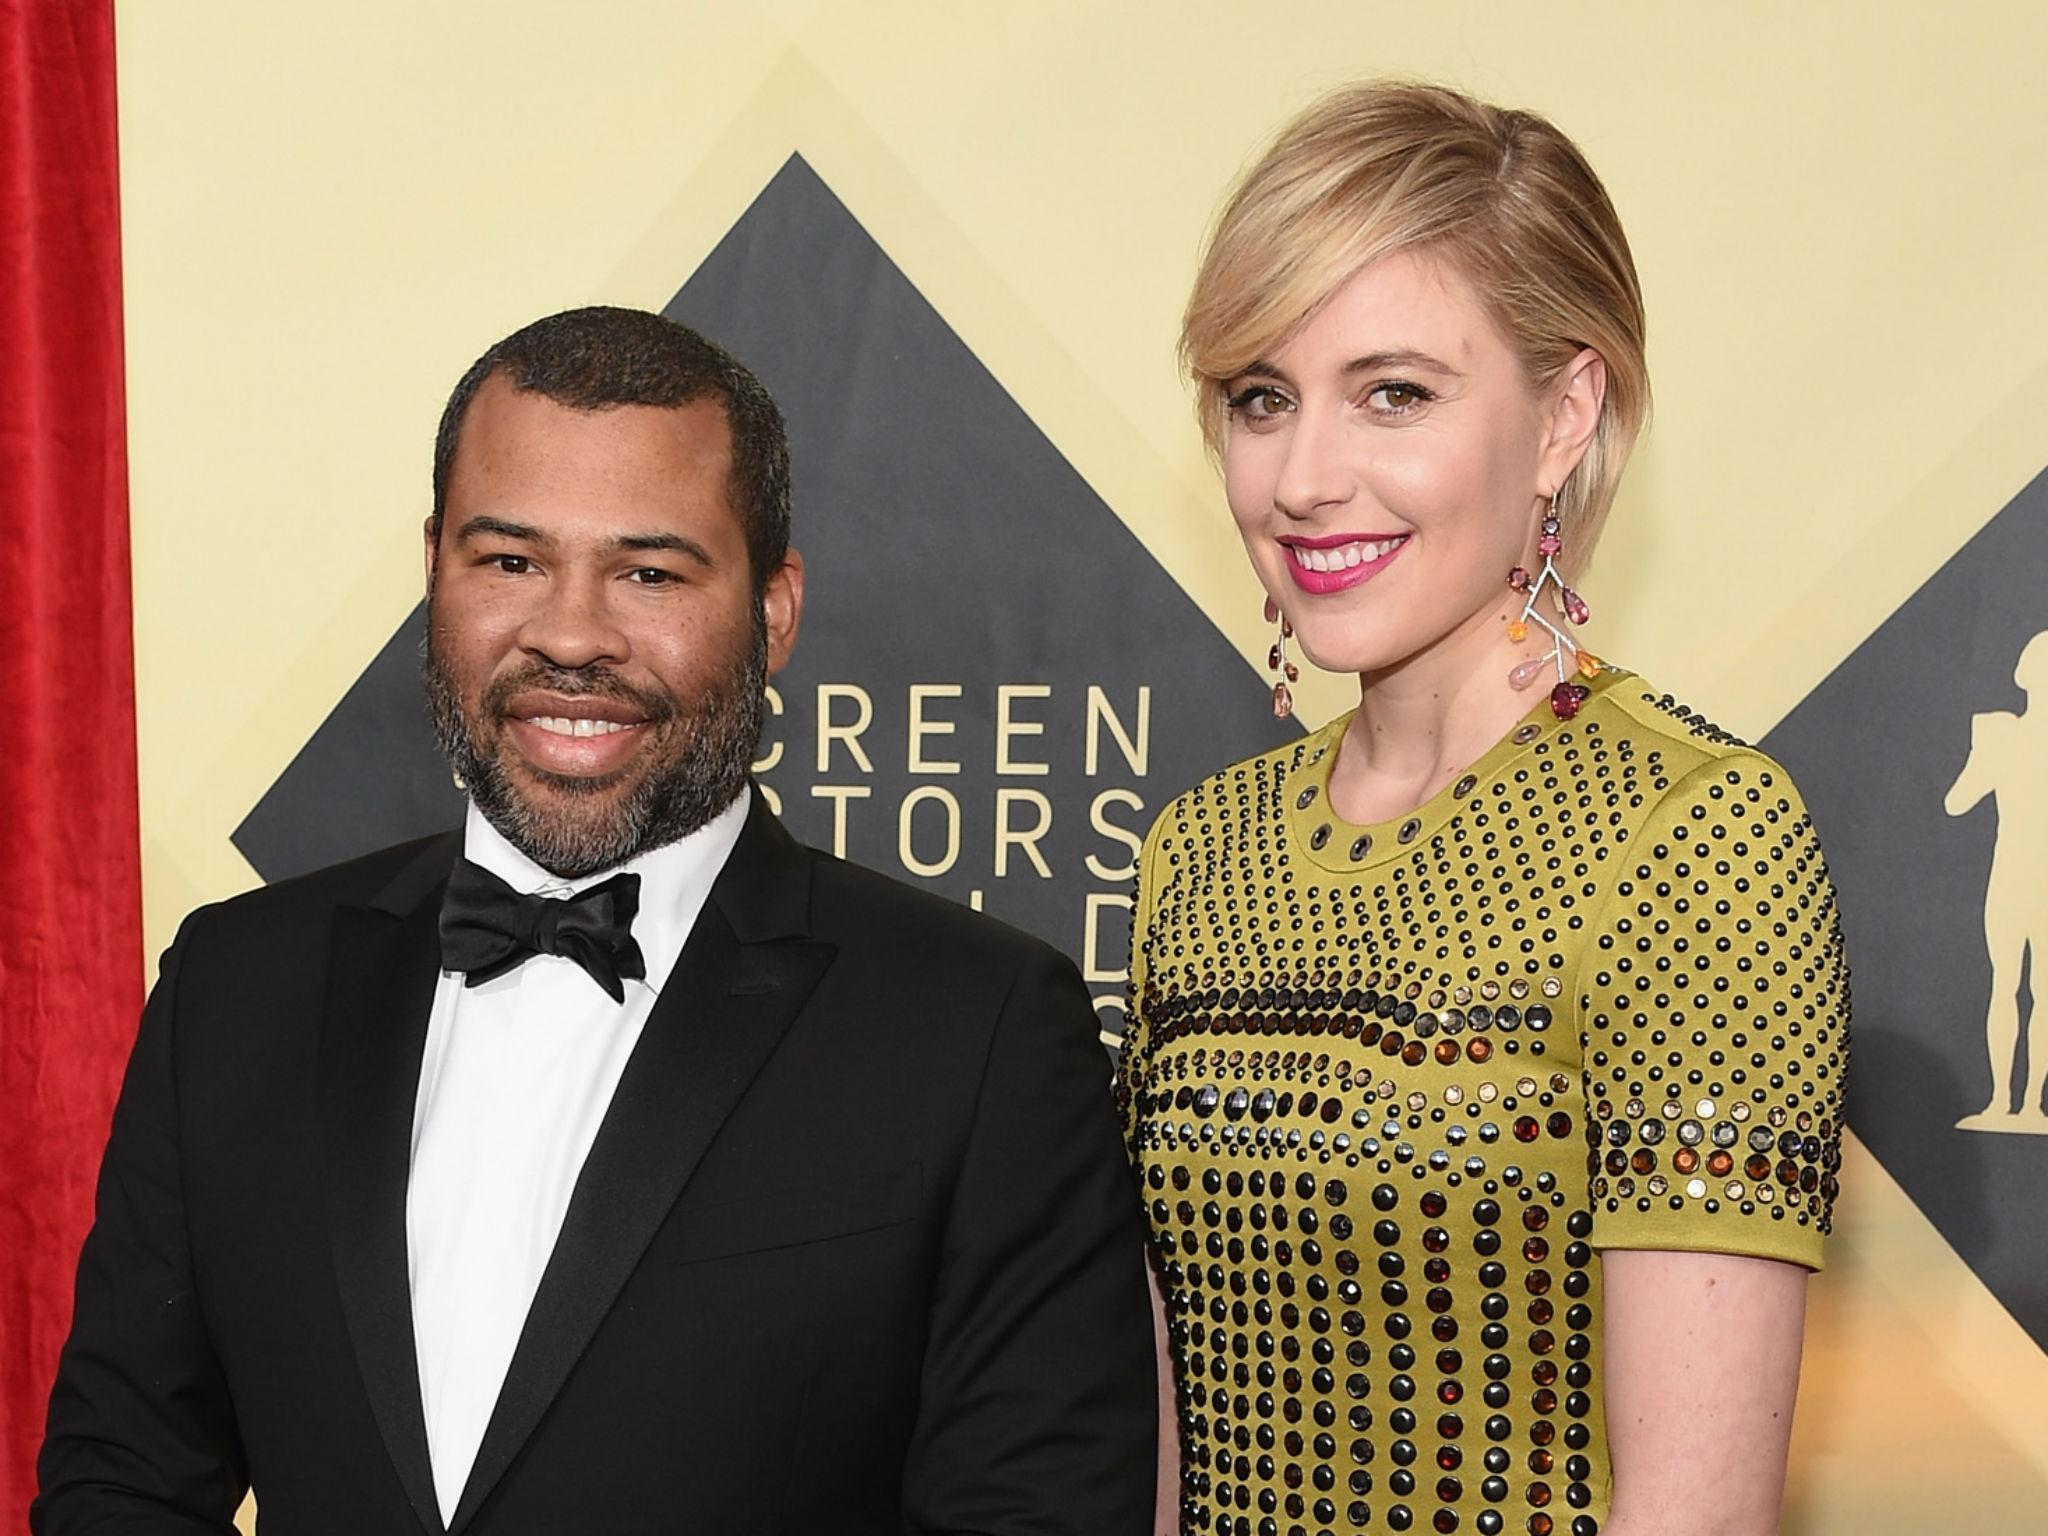 Oscar nominations 2018: Jordan Peele and Greta Gerwig's Best Director nods are a win for diversity and creativity